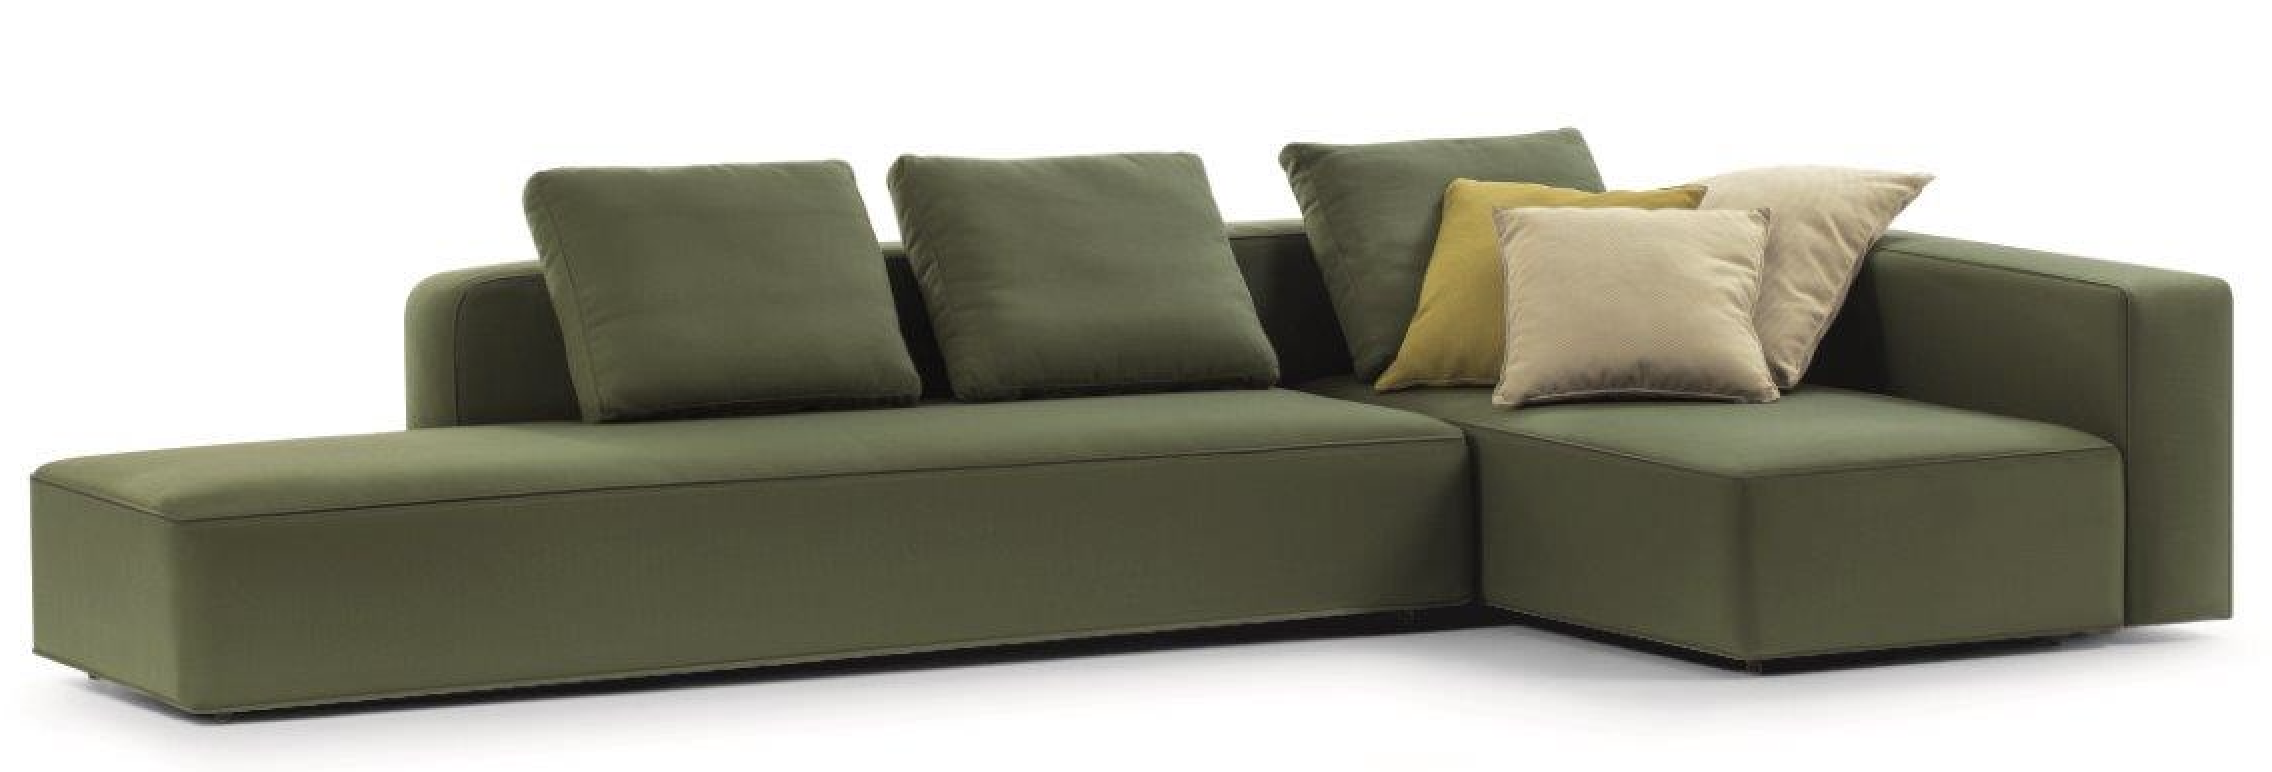 Product Image DANDY sectional SOFA